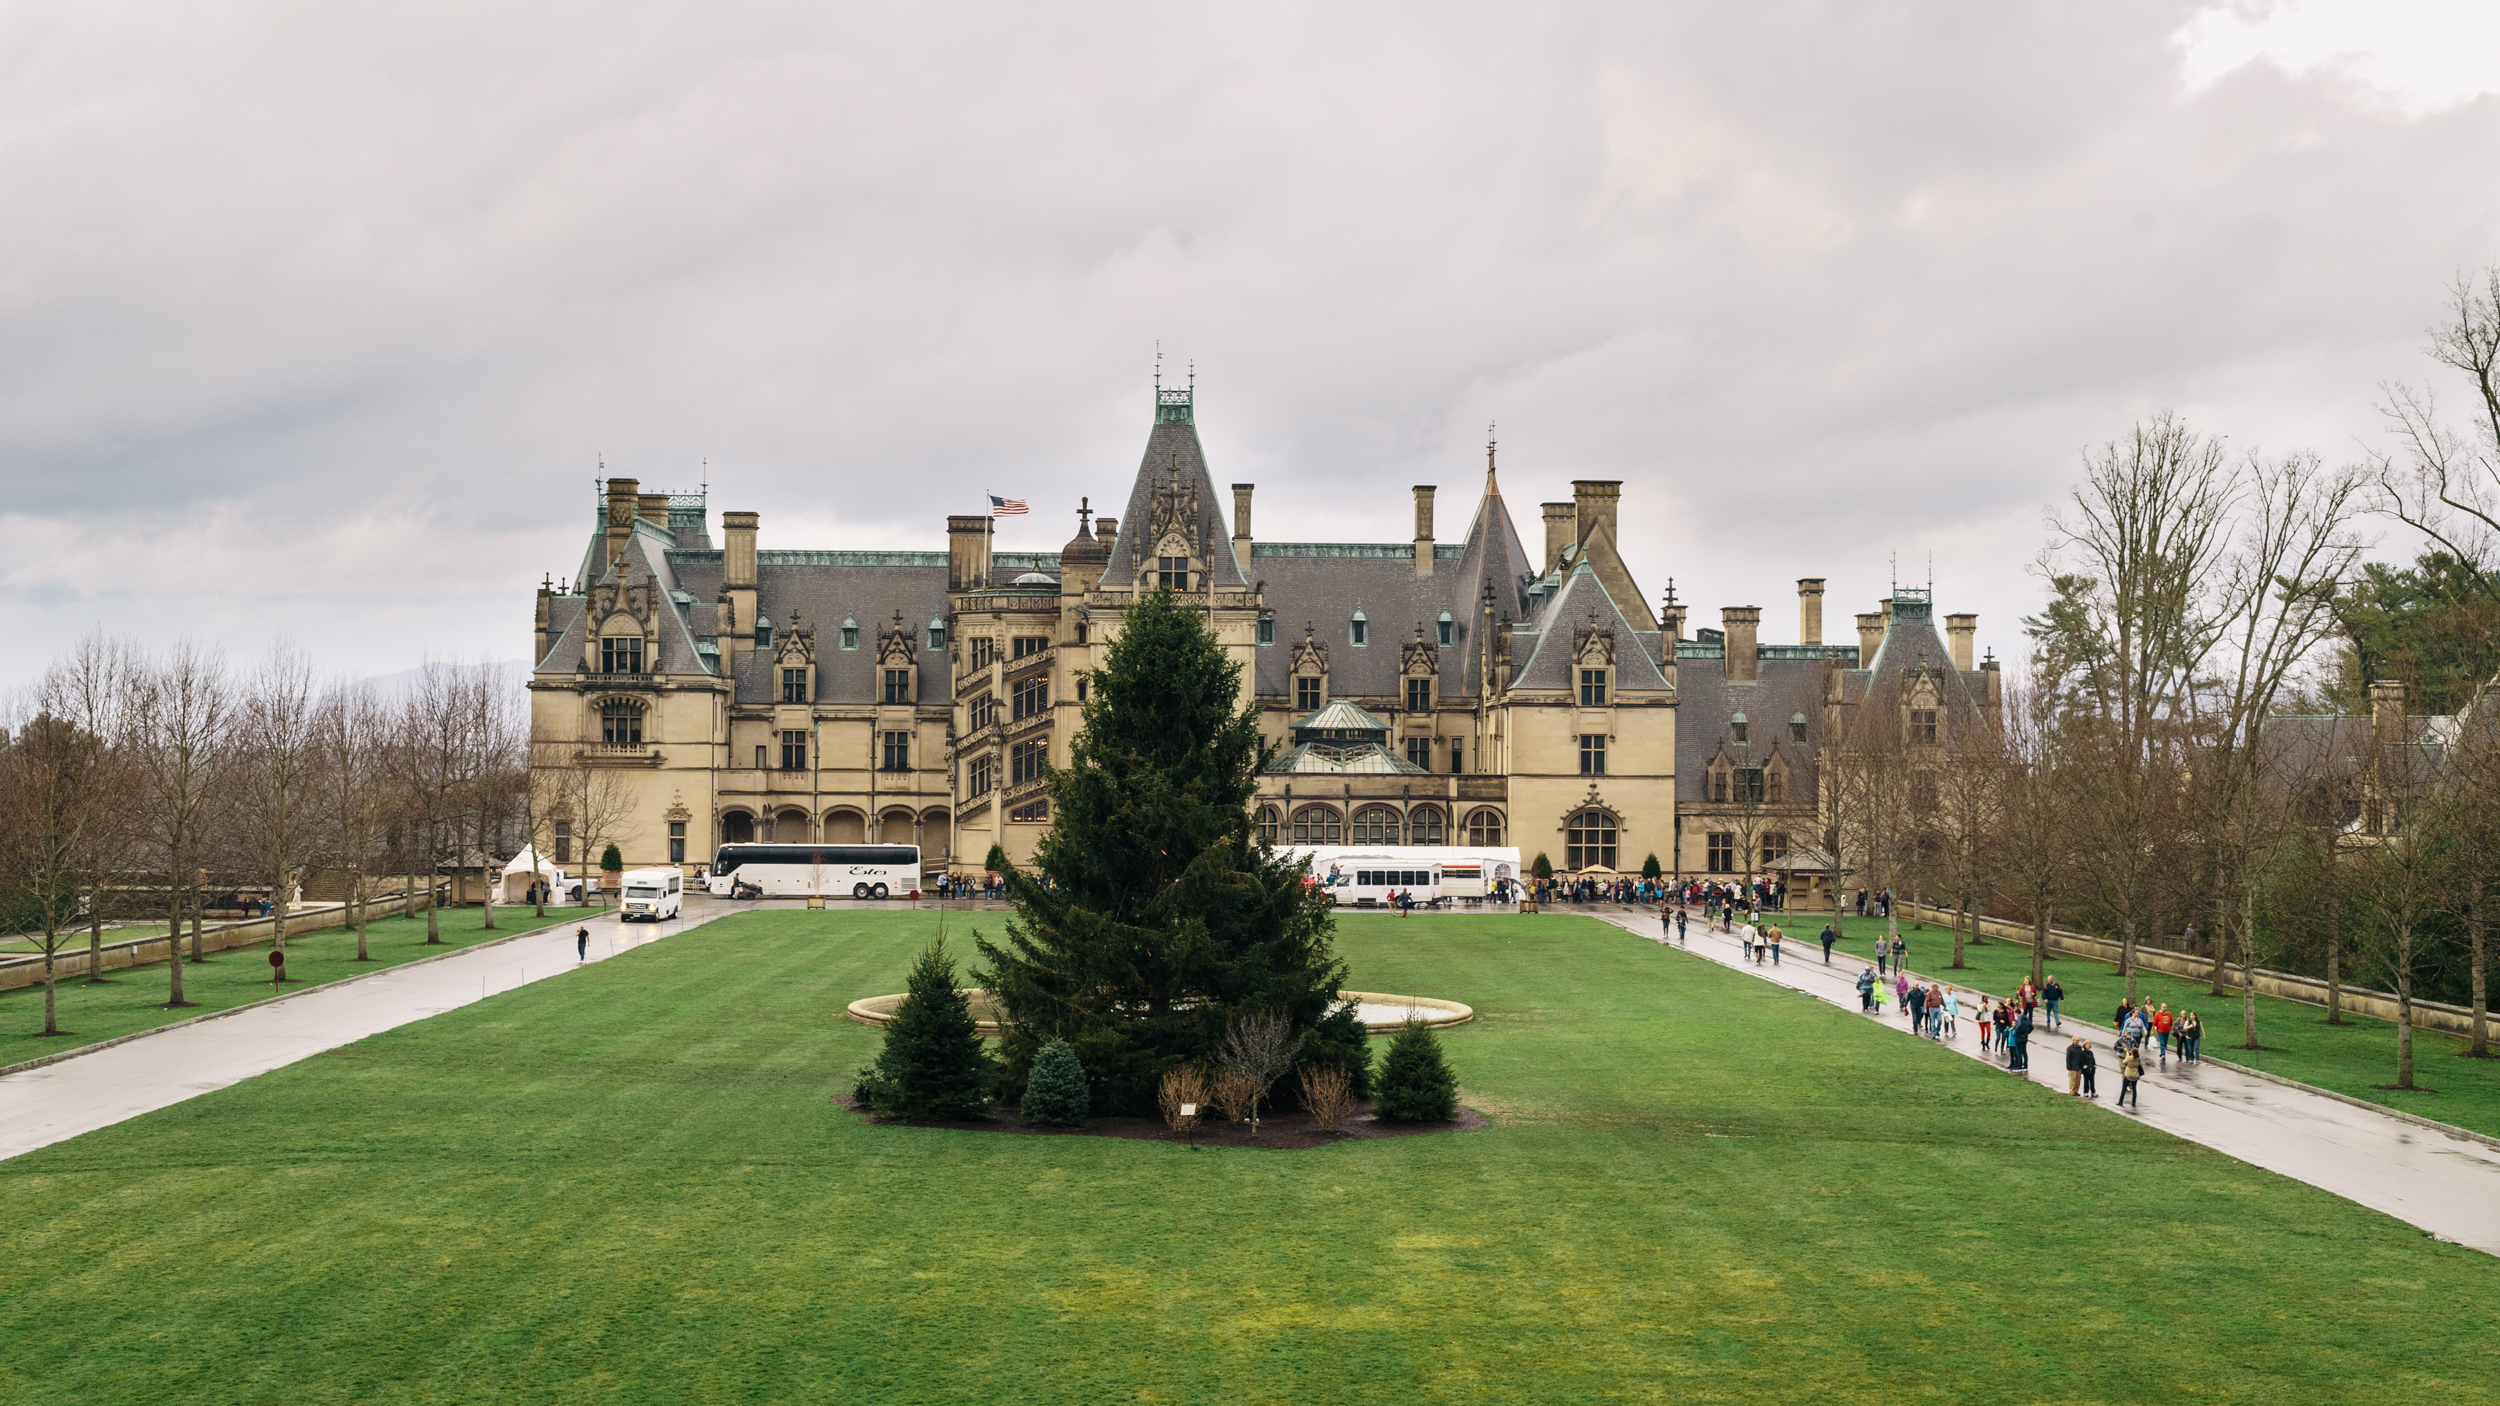 We checked out the Biltmore Estate, the country's largest house. Unfortunately, we chose a gloomy and wet day to sightsee.